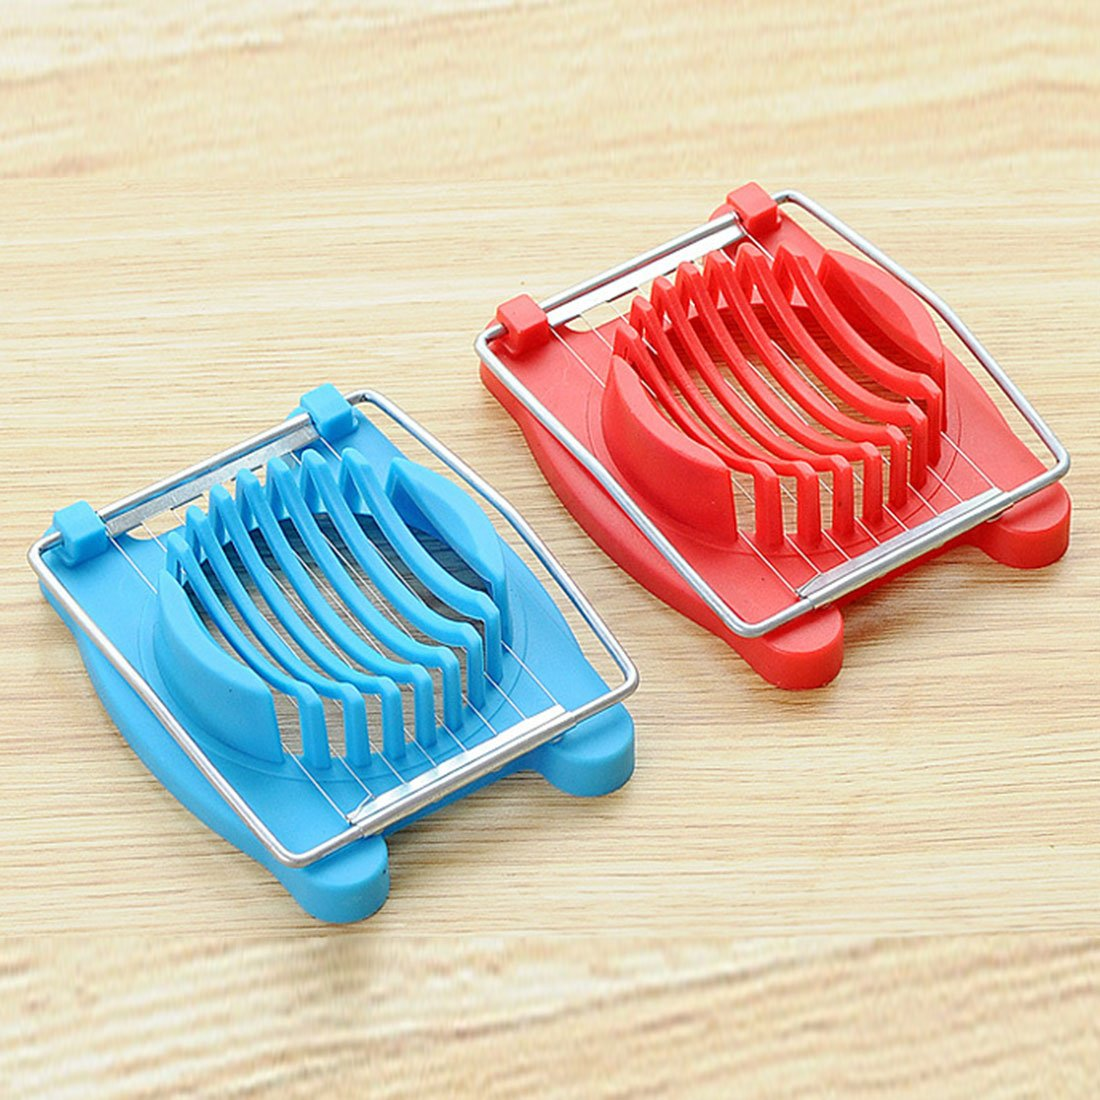 Amazon.com: Kitchen Cooking Tools Stainless Steel Boiled Egg Slicer ...